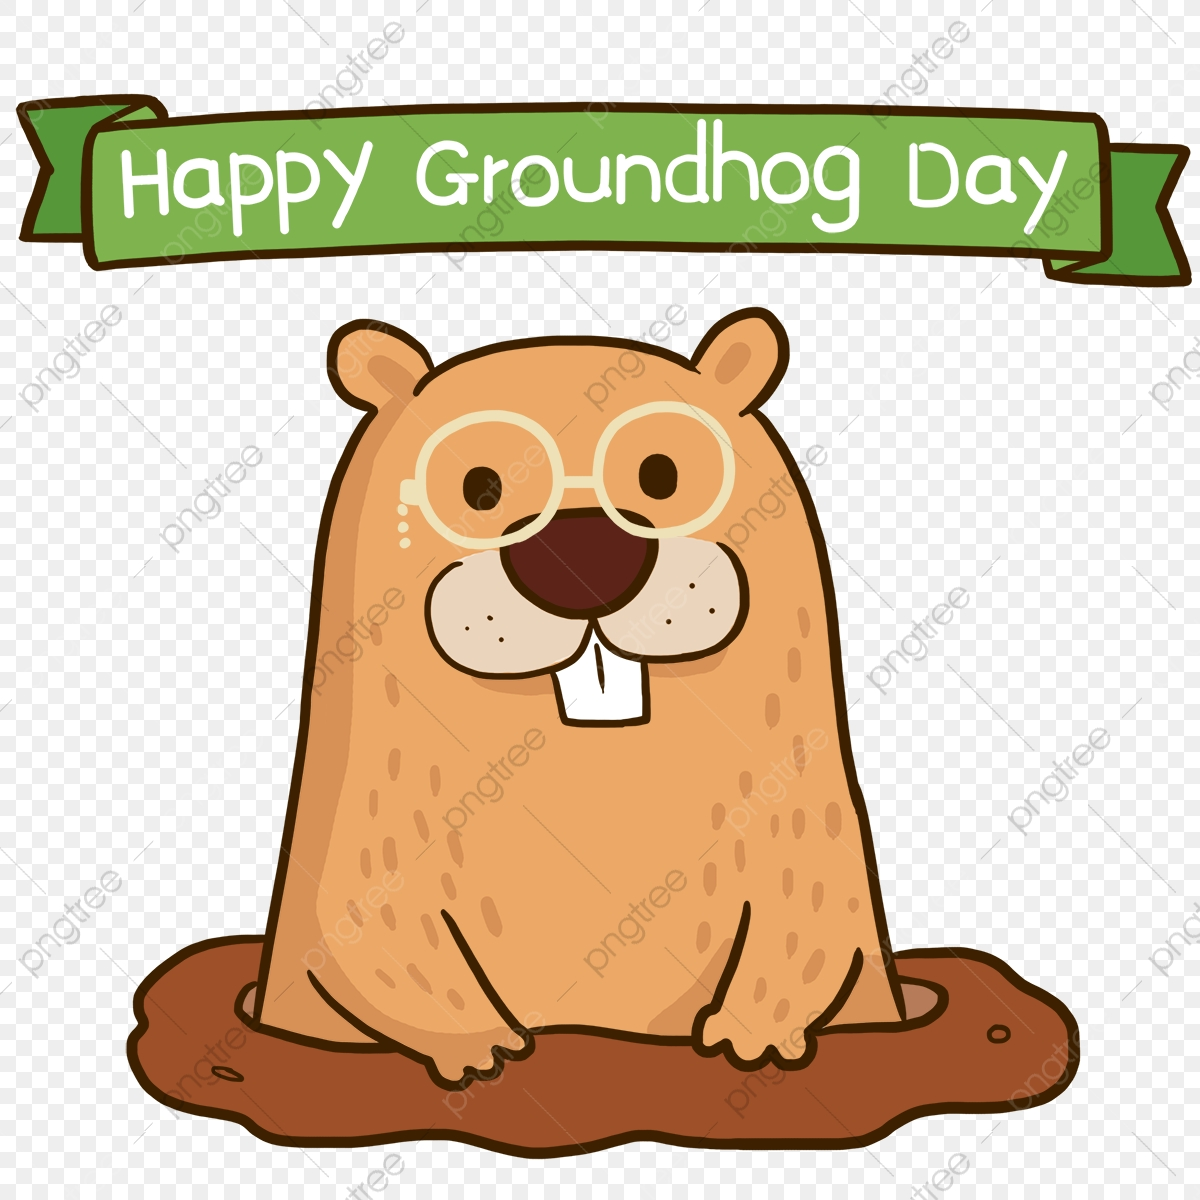 Cute Cartoon Happy Groundhog Day Happy Groundhog Day The Cartoon Lovely Png Transparent Clipart Image And Psd File For Free Download